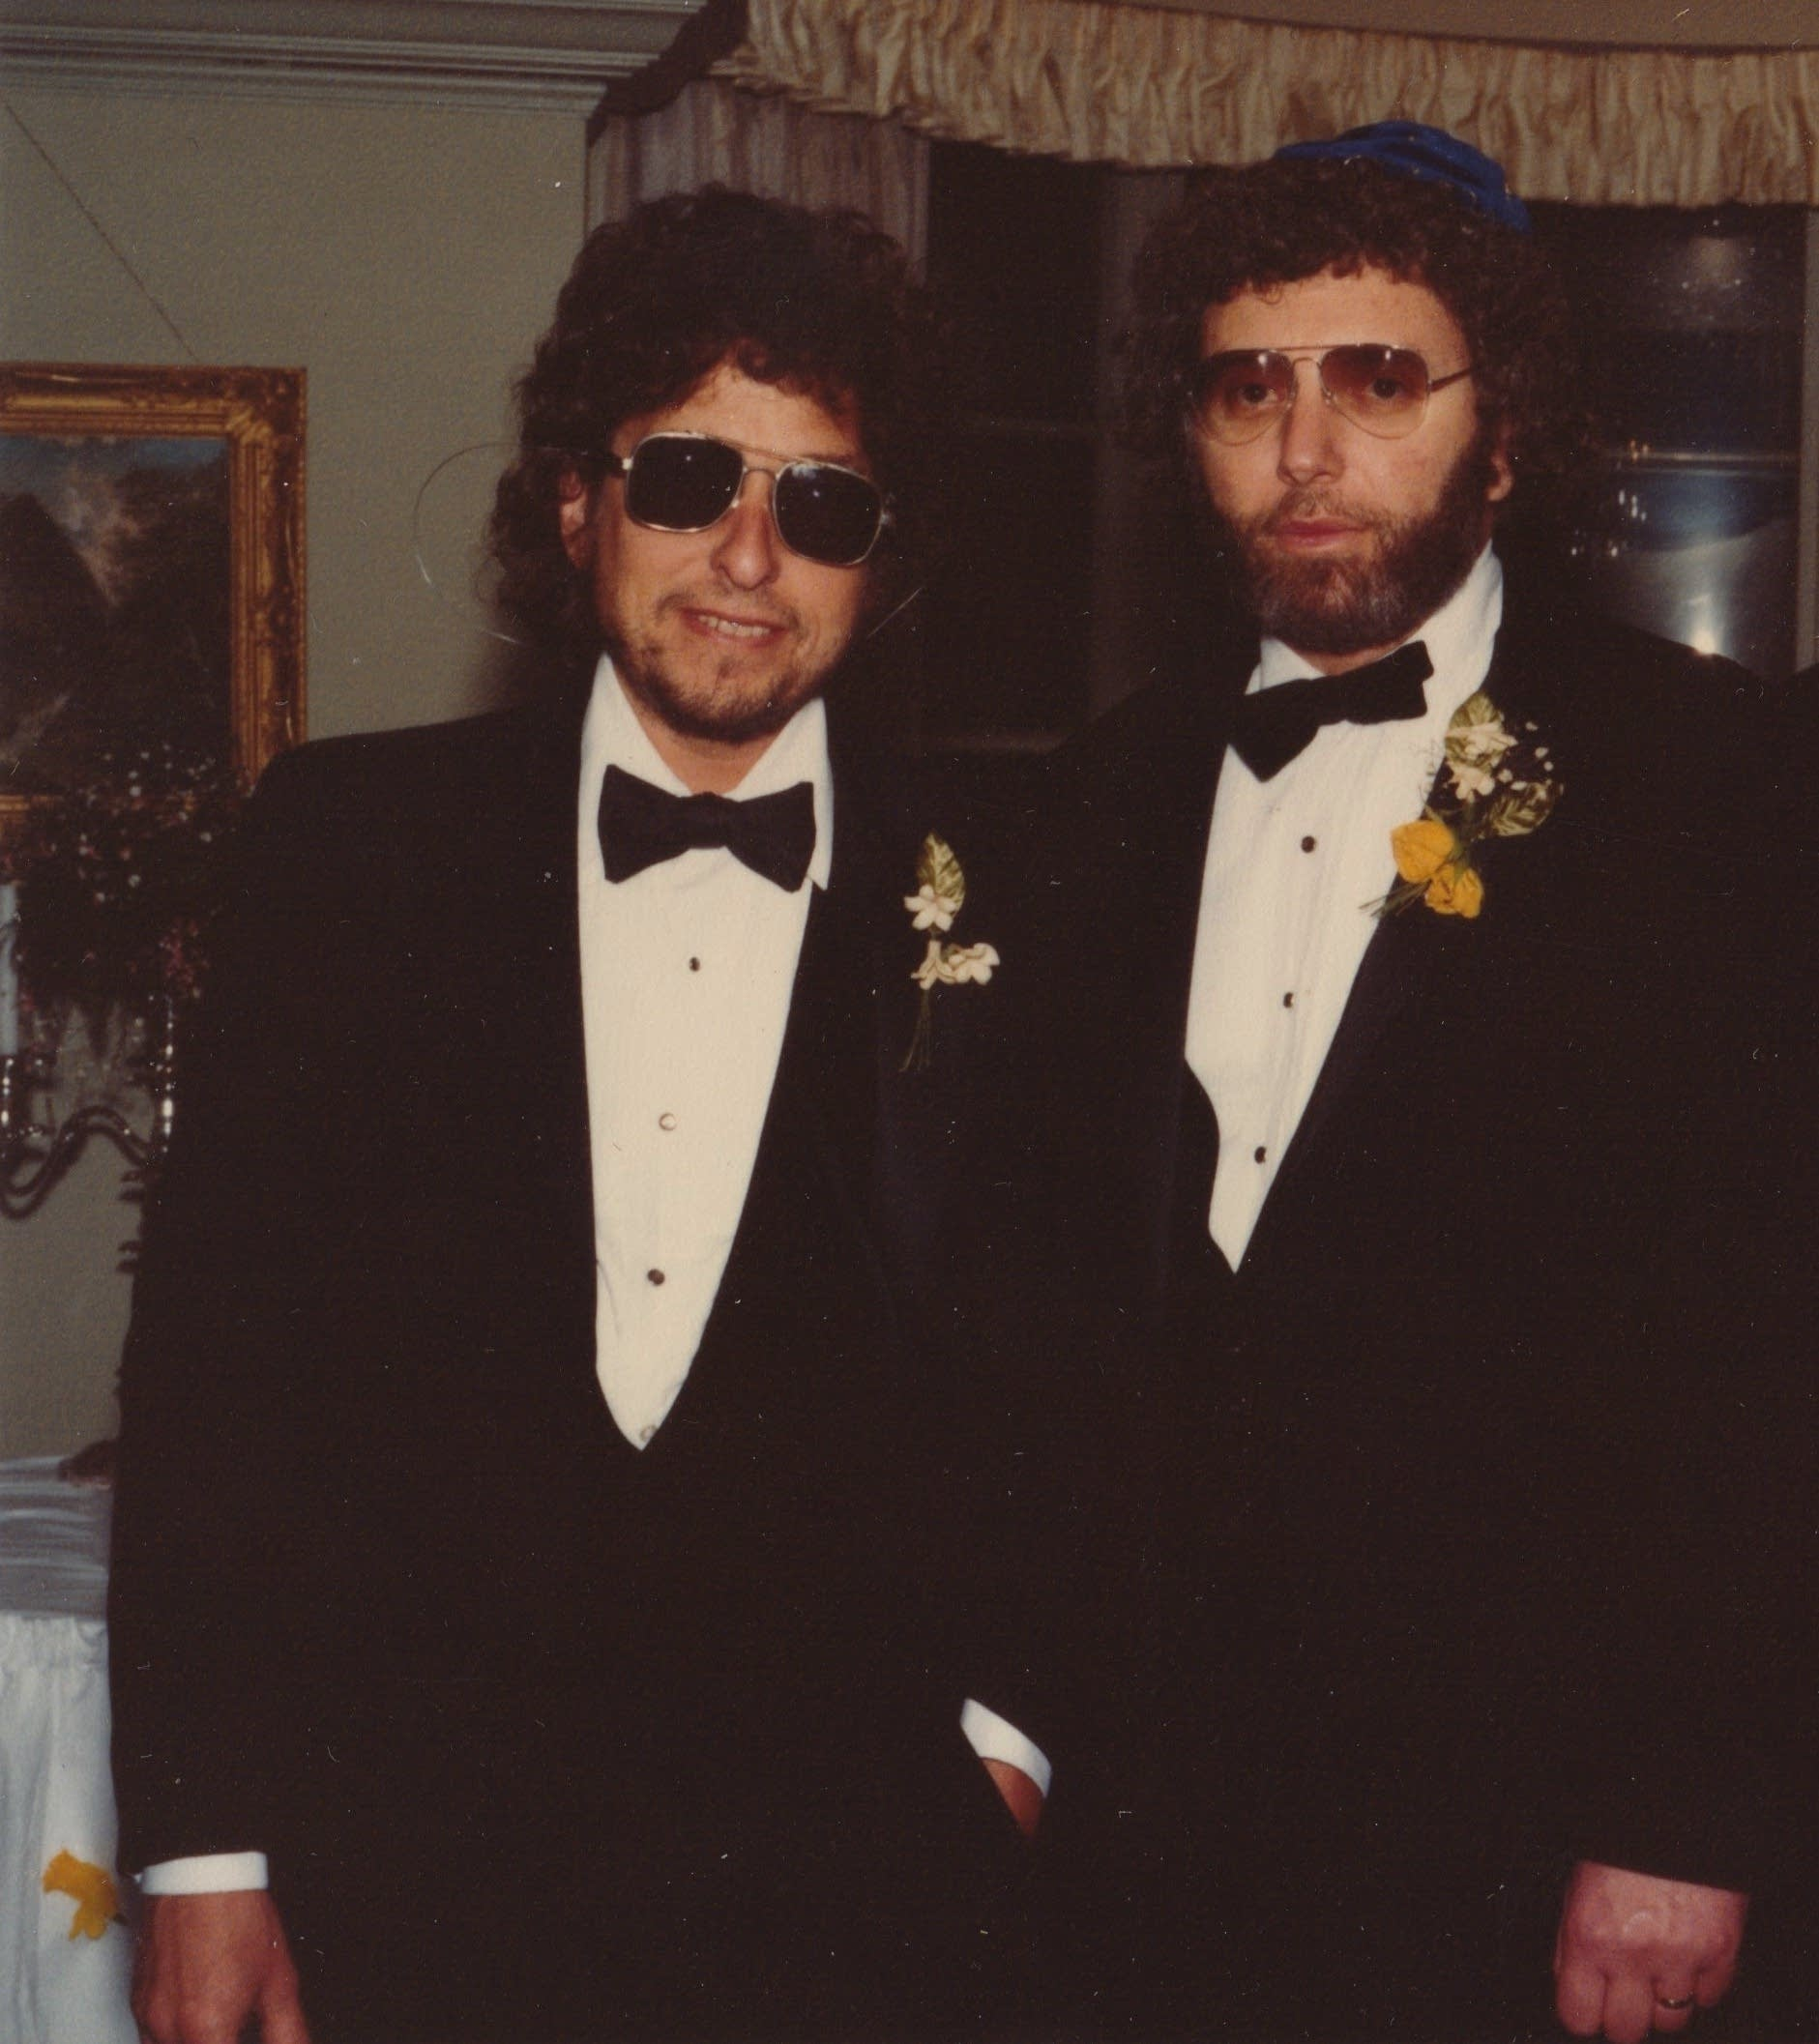 When Louie Kemp was married in 1983, Bob Dylan was his best man.